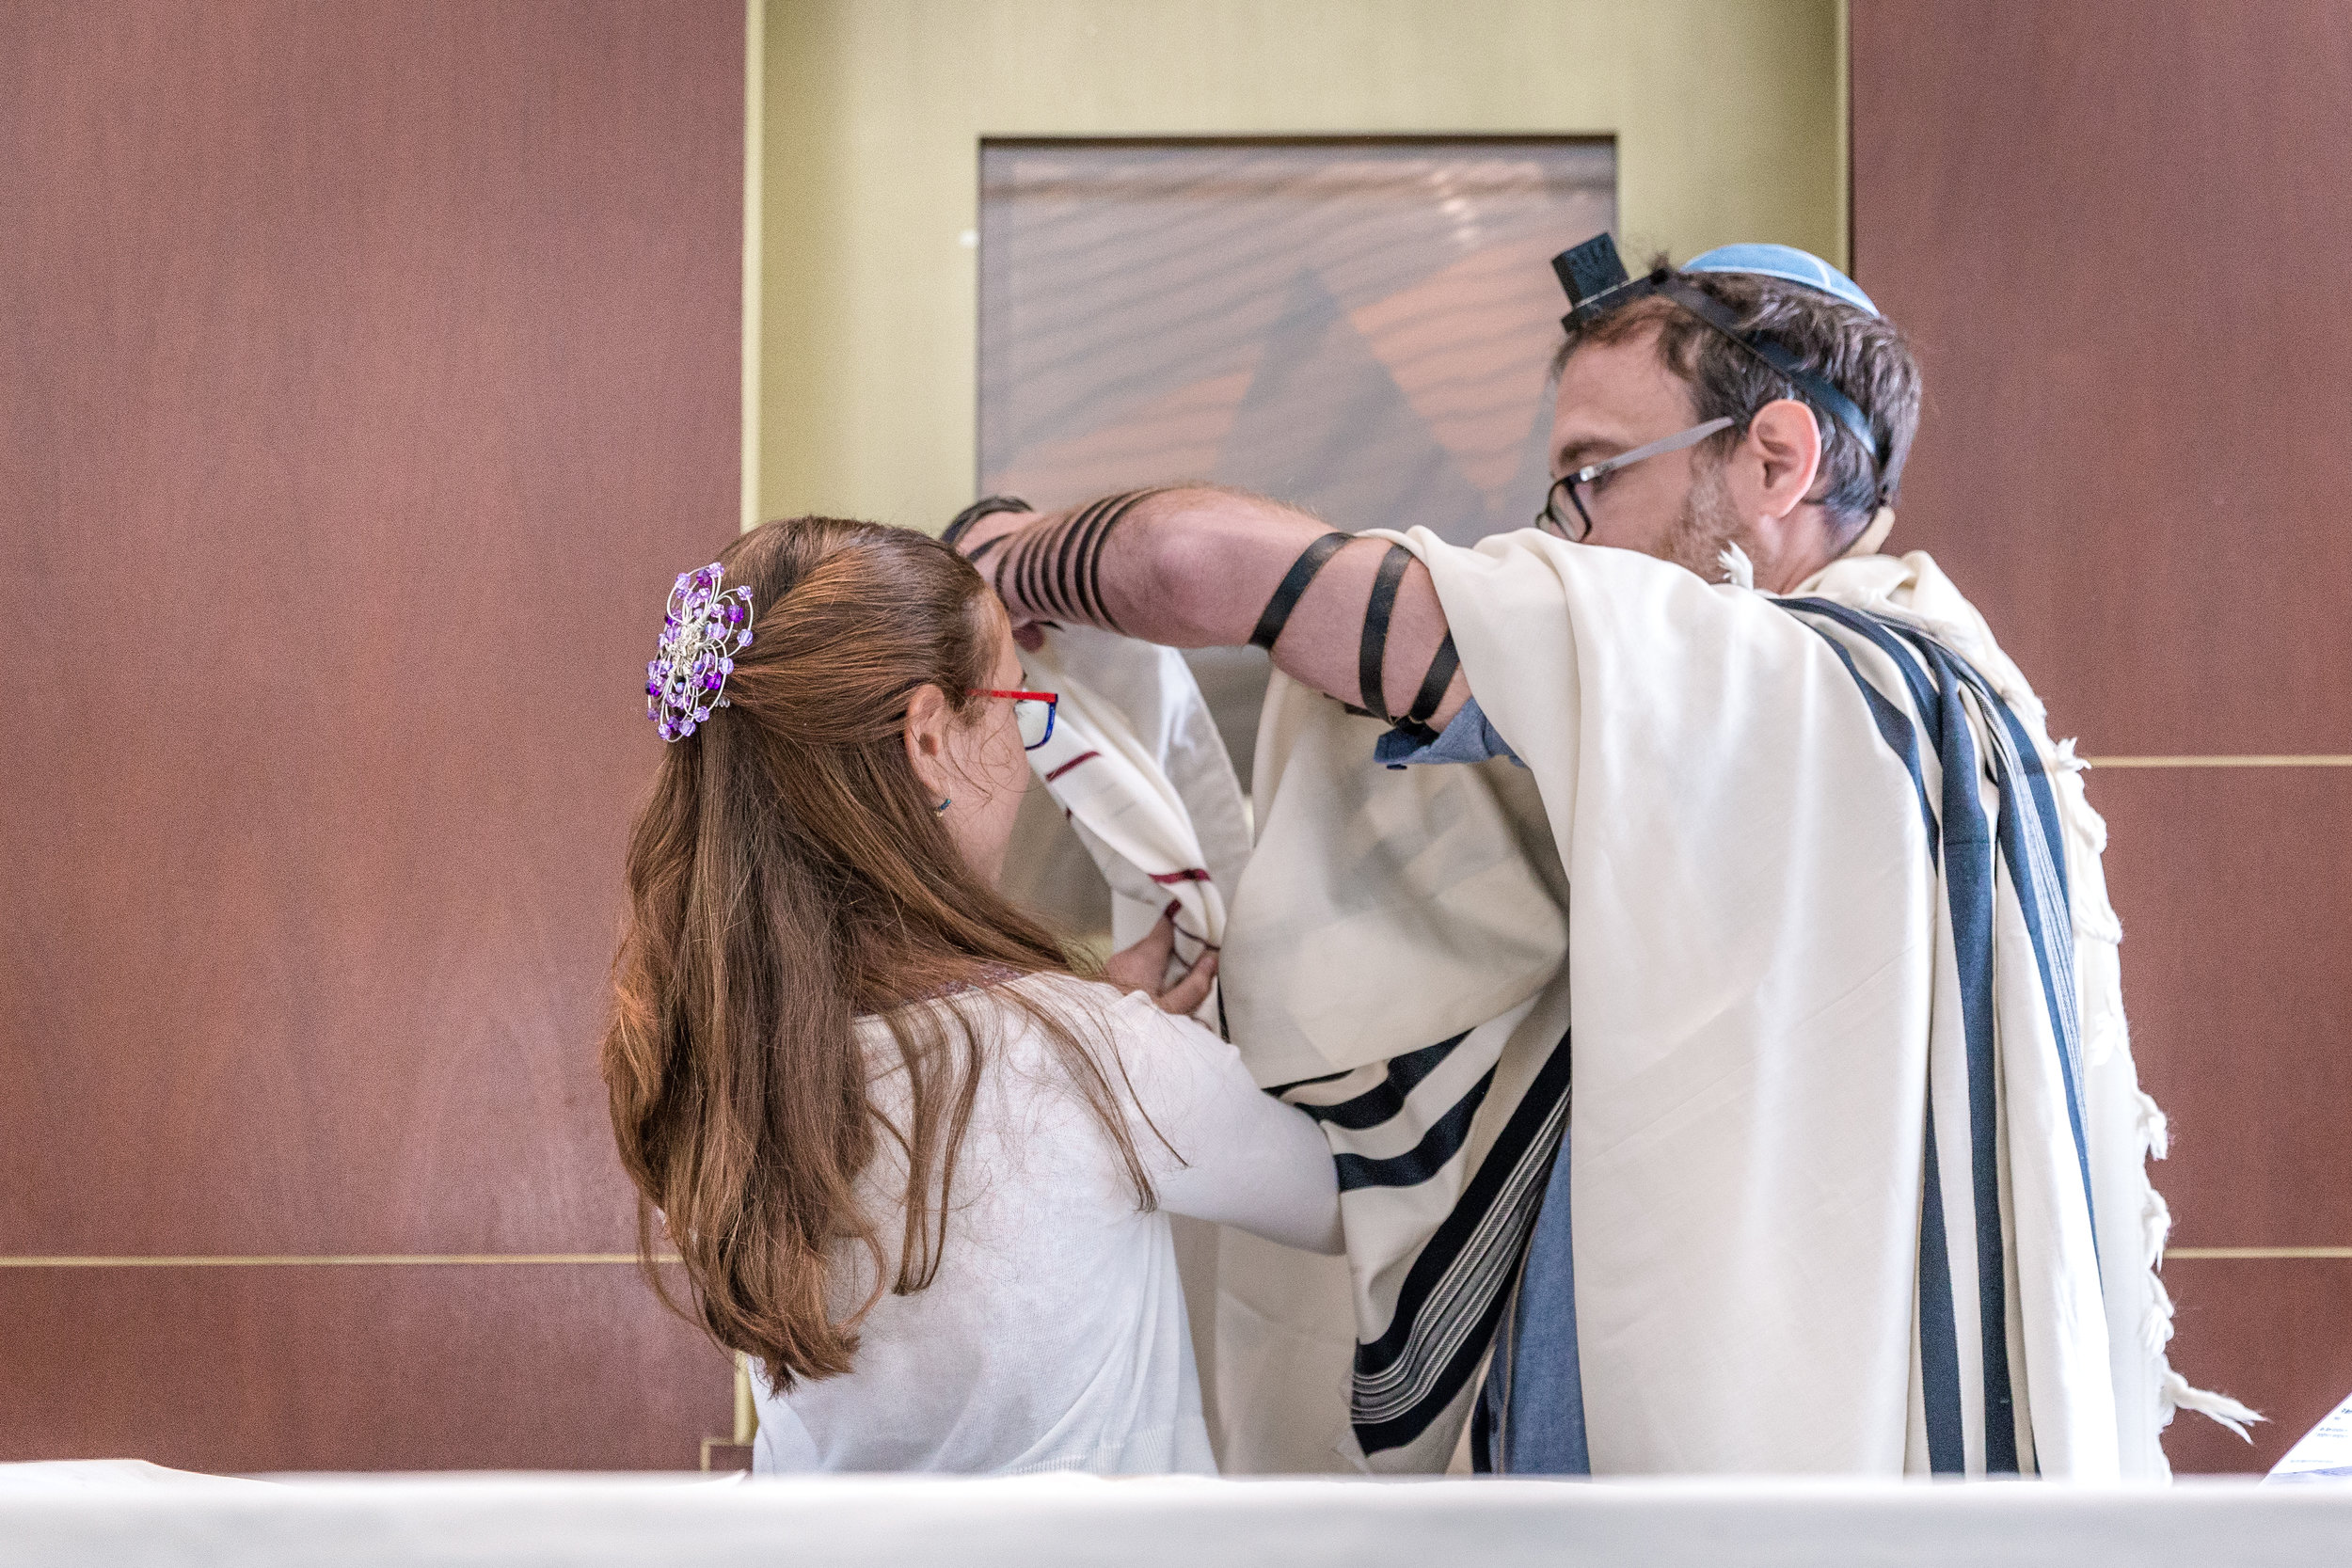 Meirav is wrapped in a tallit - the traditional Jewish prayer shawl - by her Father. -